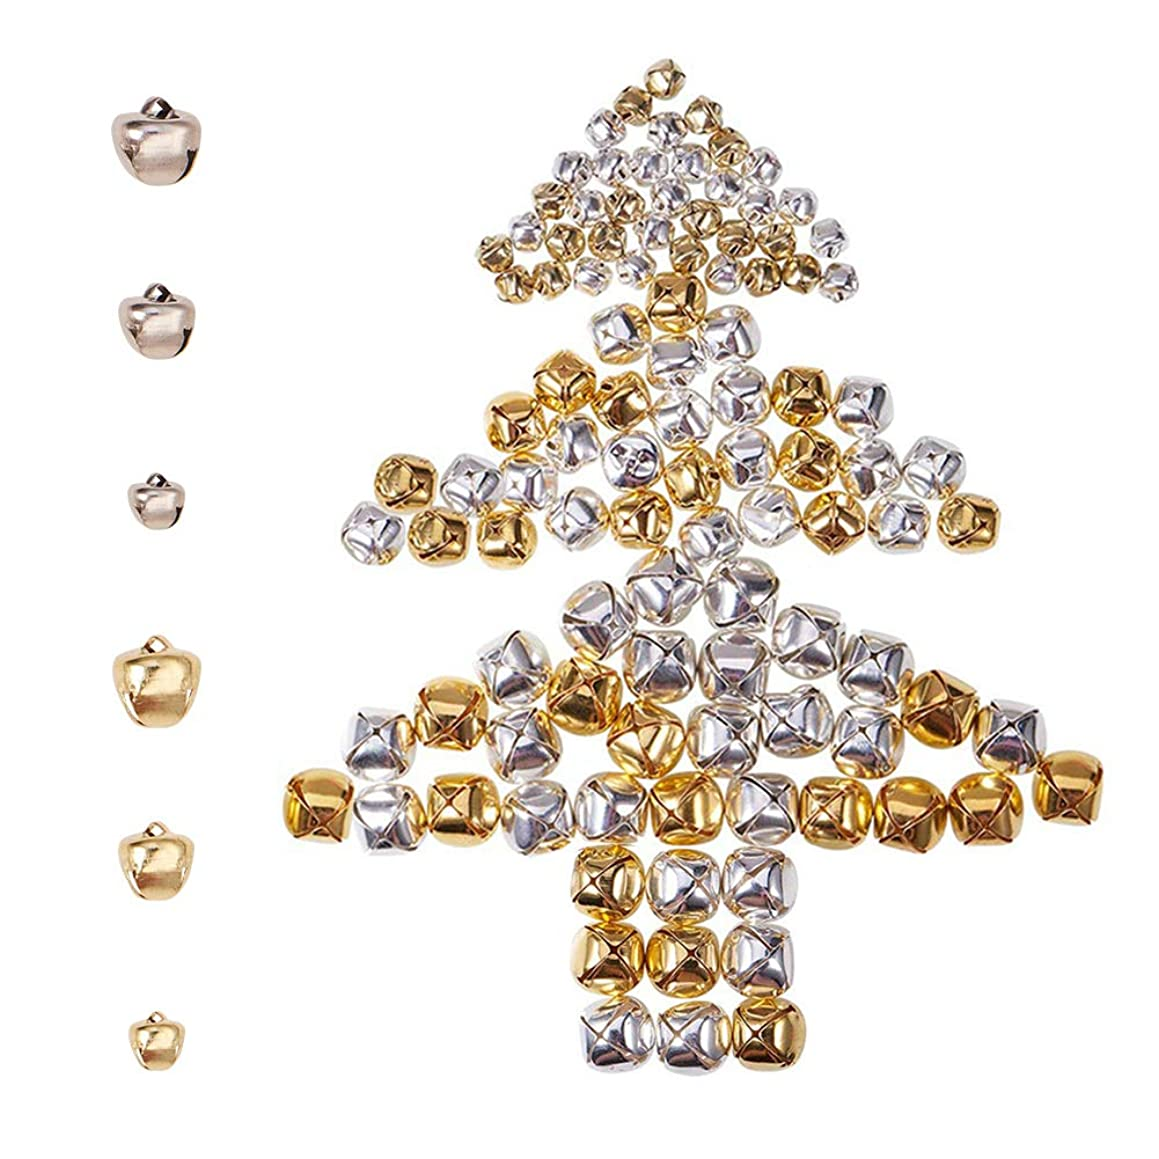 PH PandaHall About 460pcs 2 Colors 3 Sizes Iron Craft Jingle Bells Mini Small Bell Bell Charms Loose Beads or Christmas, Party Decorations Jewelry Making (Golden and Platinum)